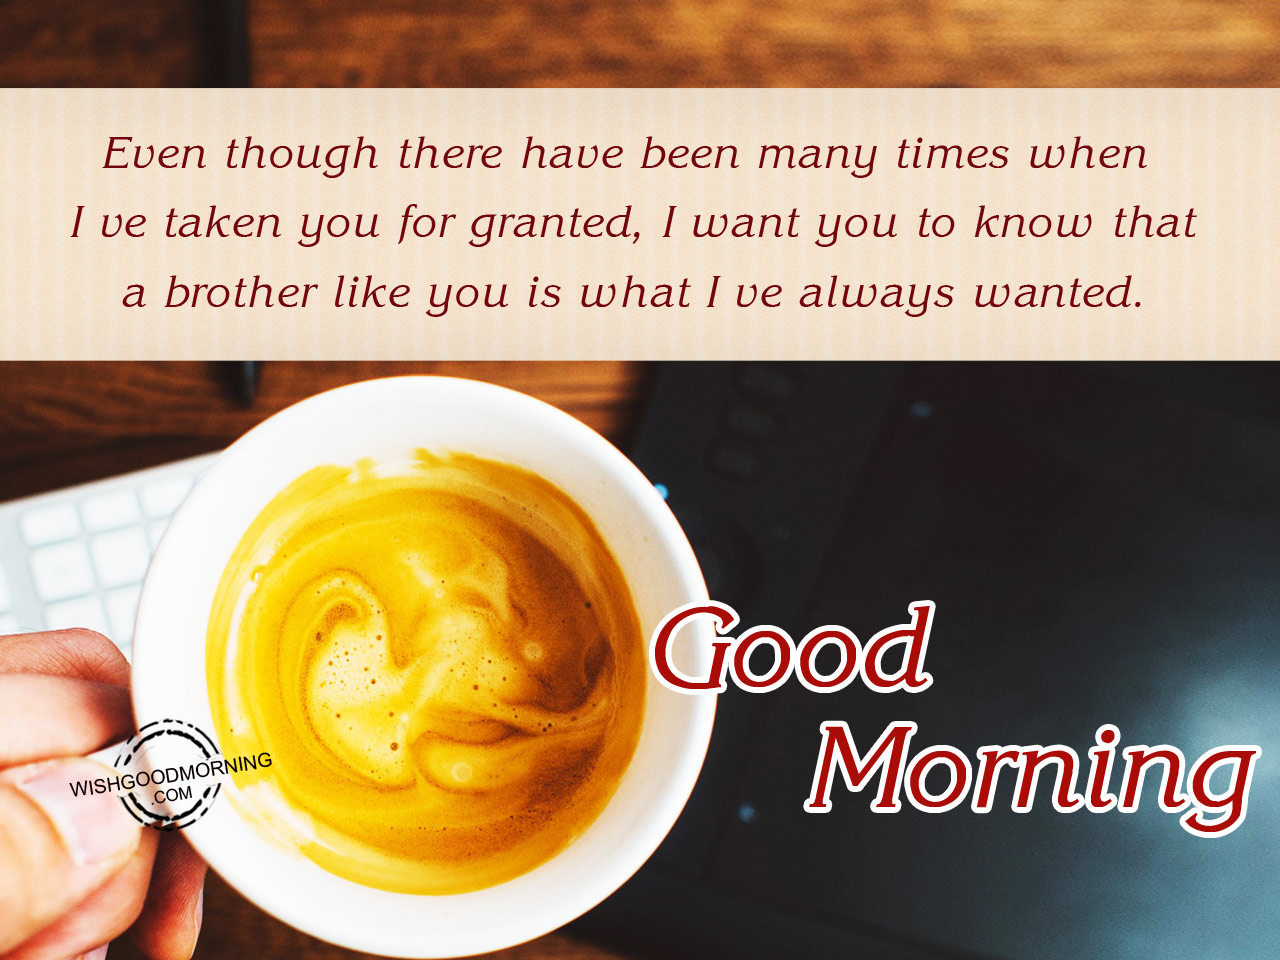 Good Morning Brother Wallpaper